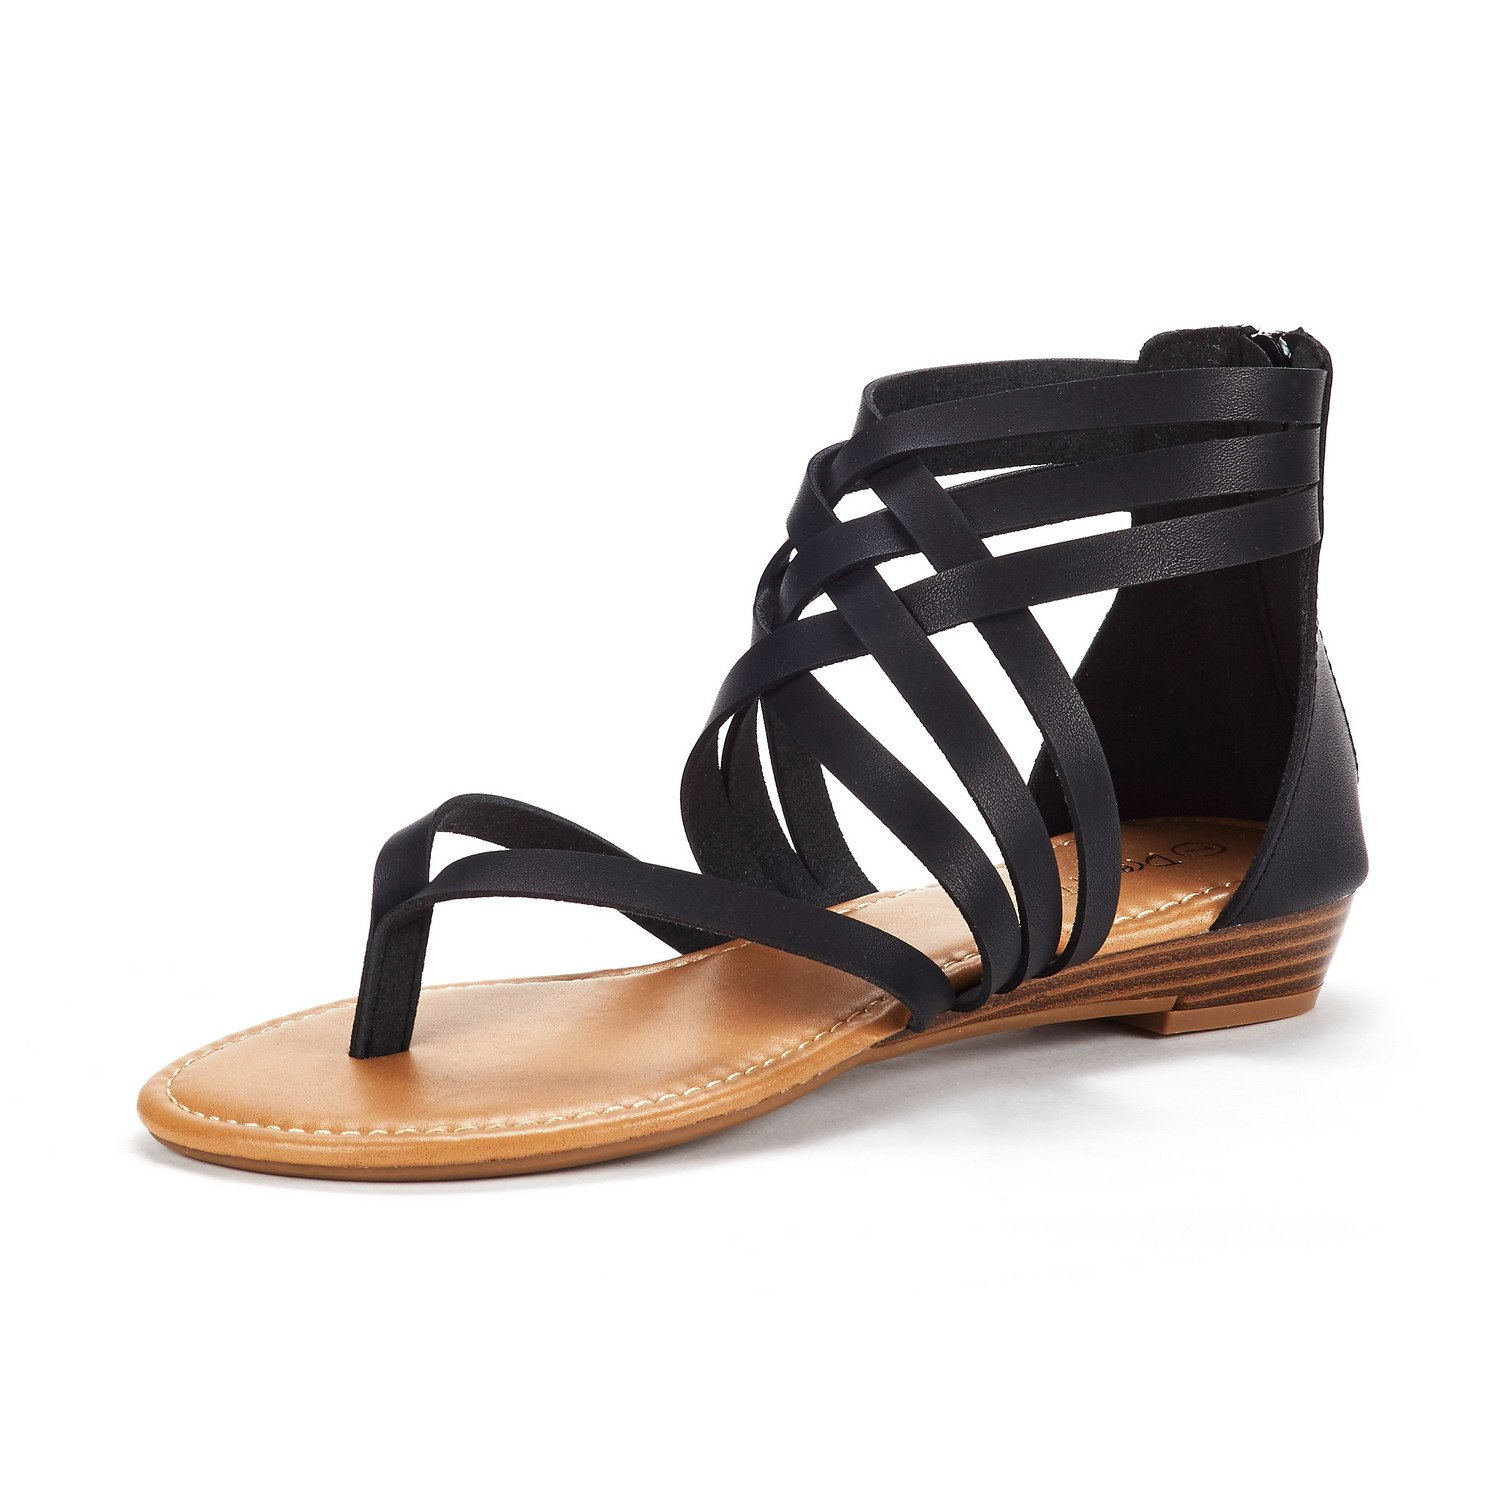 DREAM PAIRS Women's JUULY_02 Black Fashion Gladiator Design Ankle Strap Flat Sandals Size 10 M US